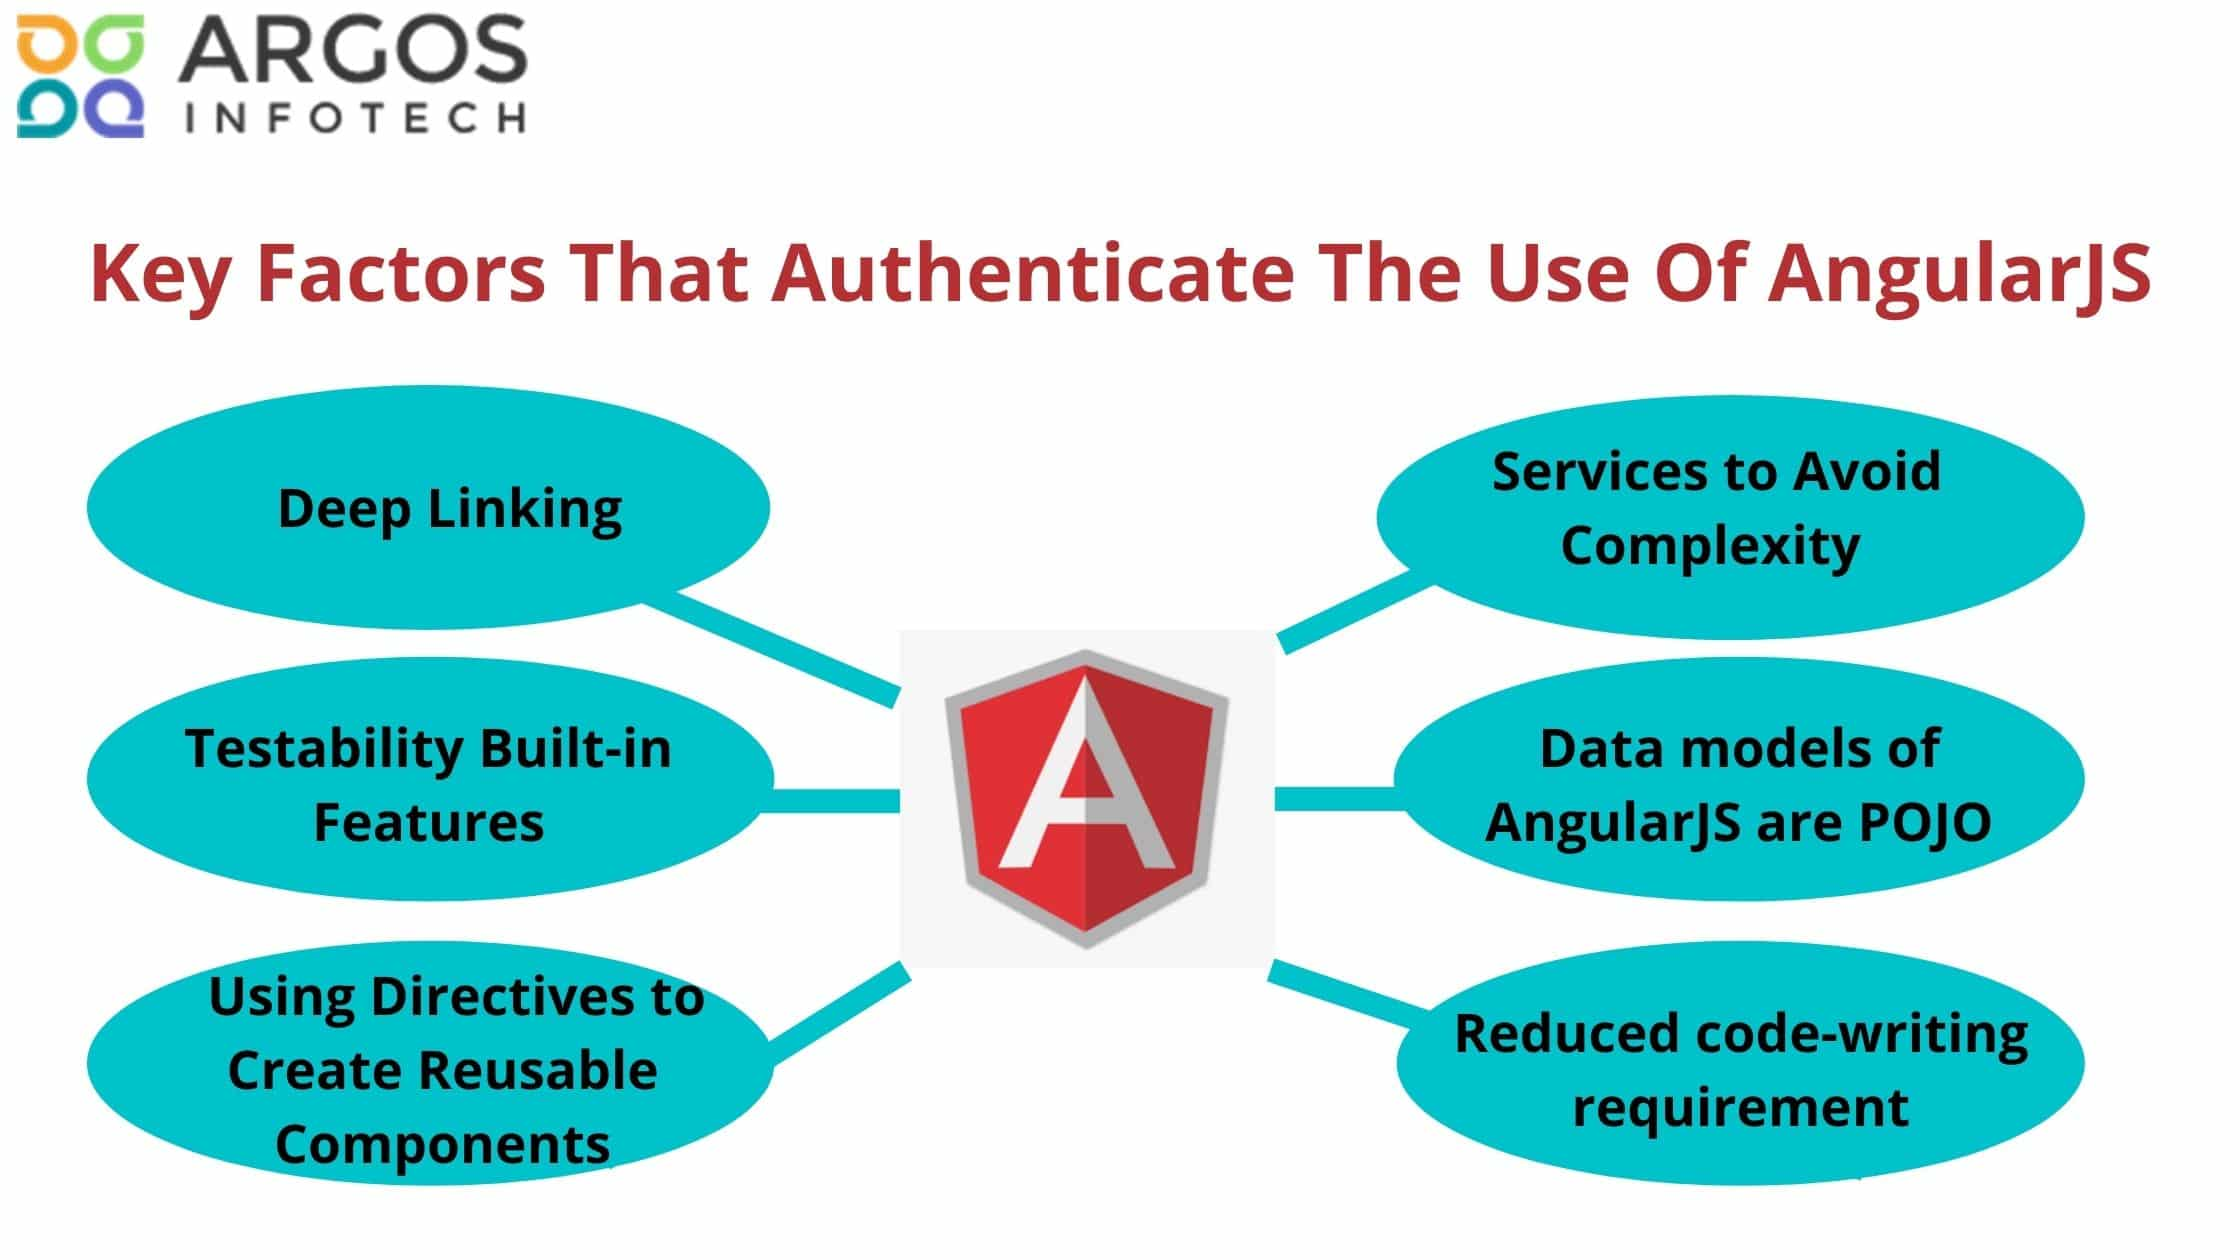 Key Factors That Authenticate The Use Of AngularJS